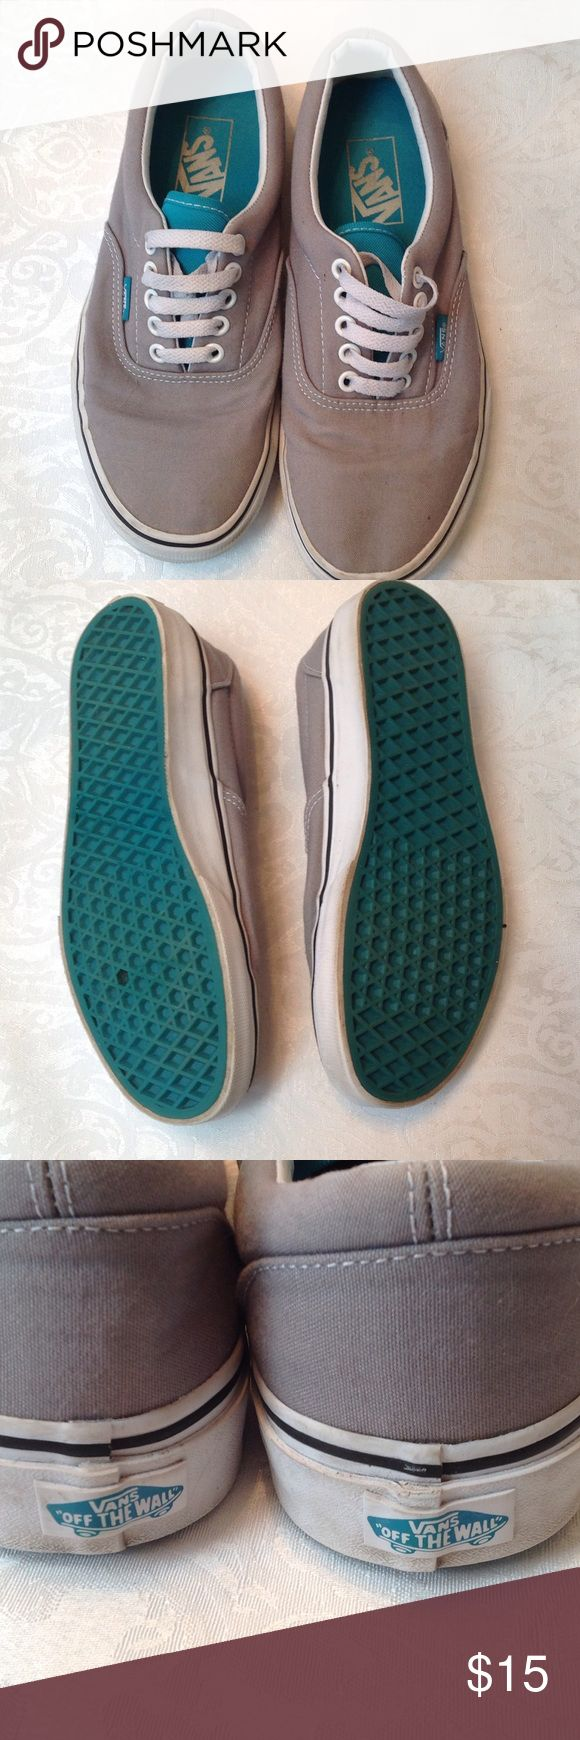 Vans men's size 6 1/2 gray and teal Vans. (B) Vans Shoes Flats & Loafers